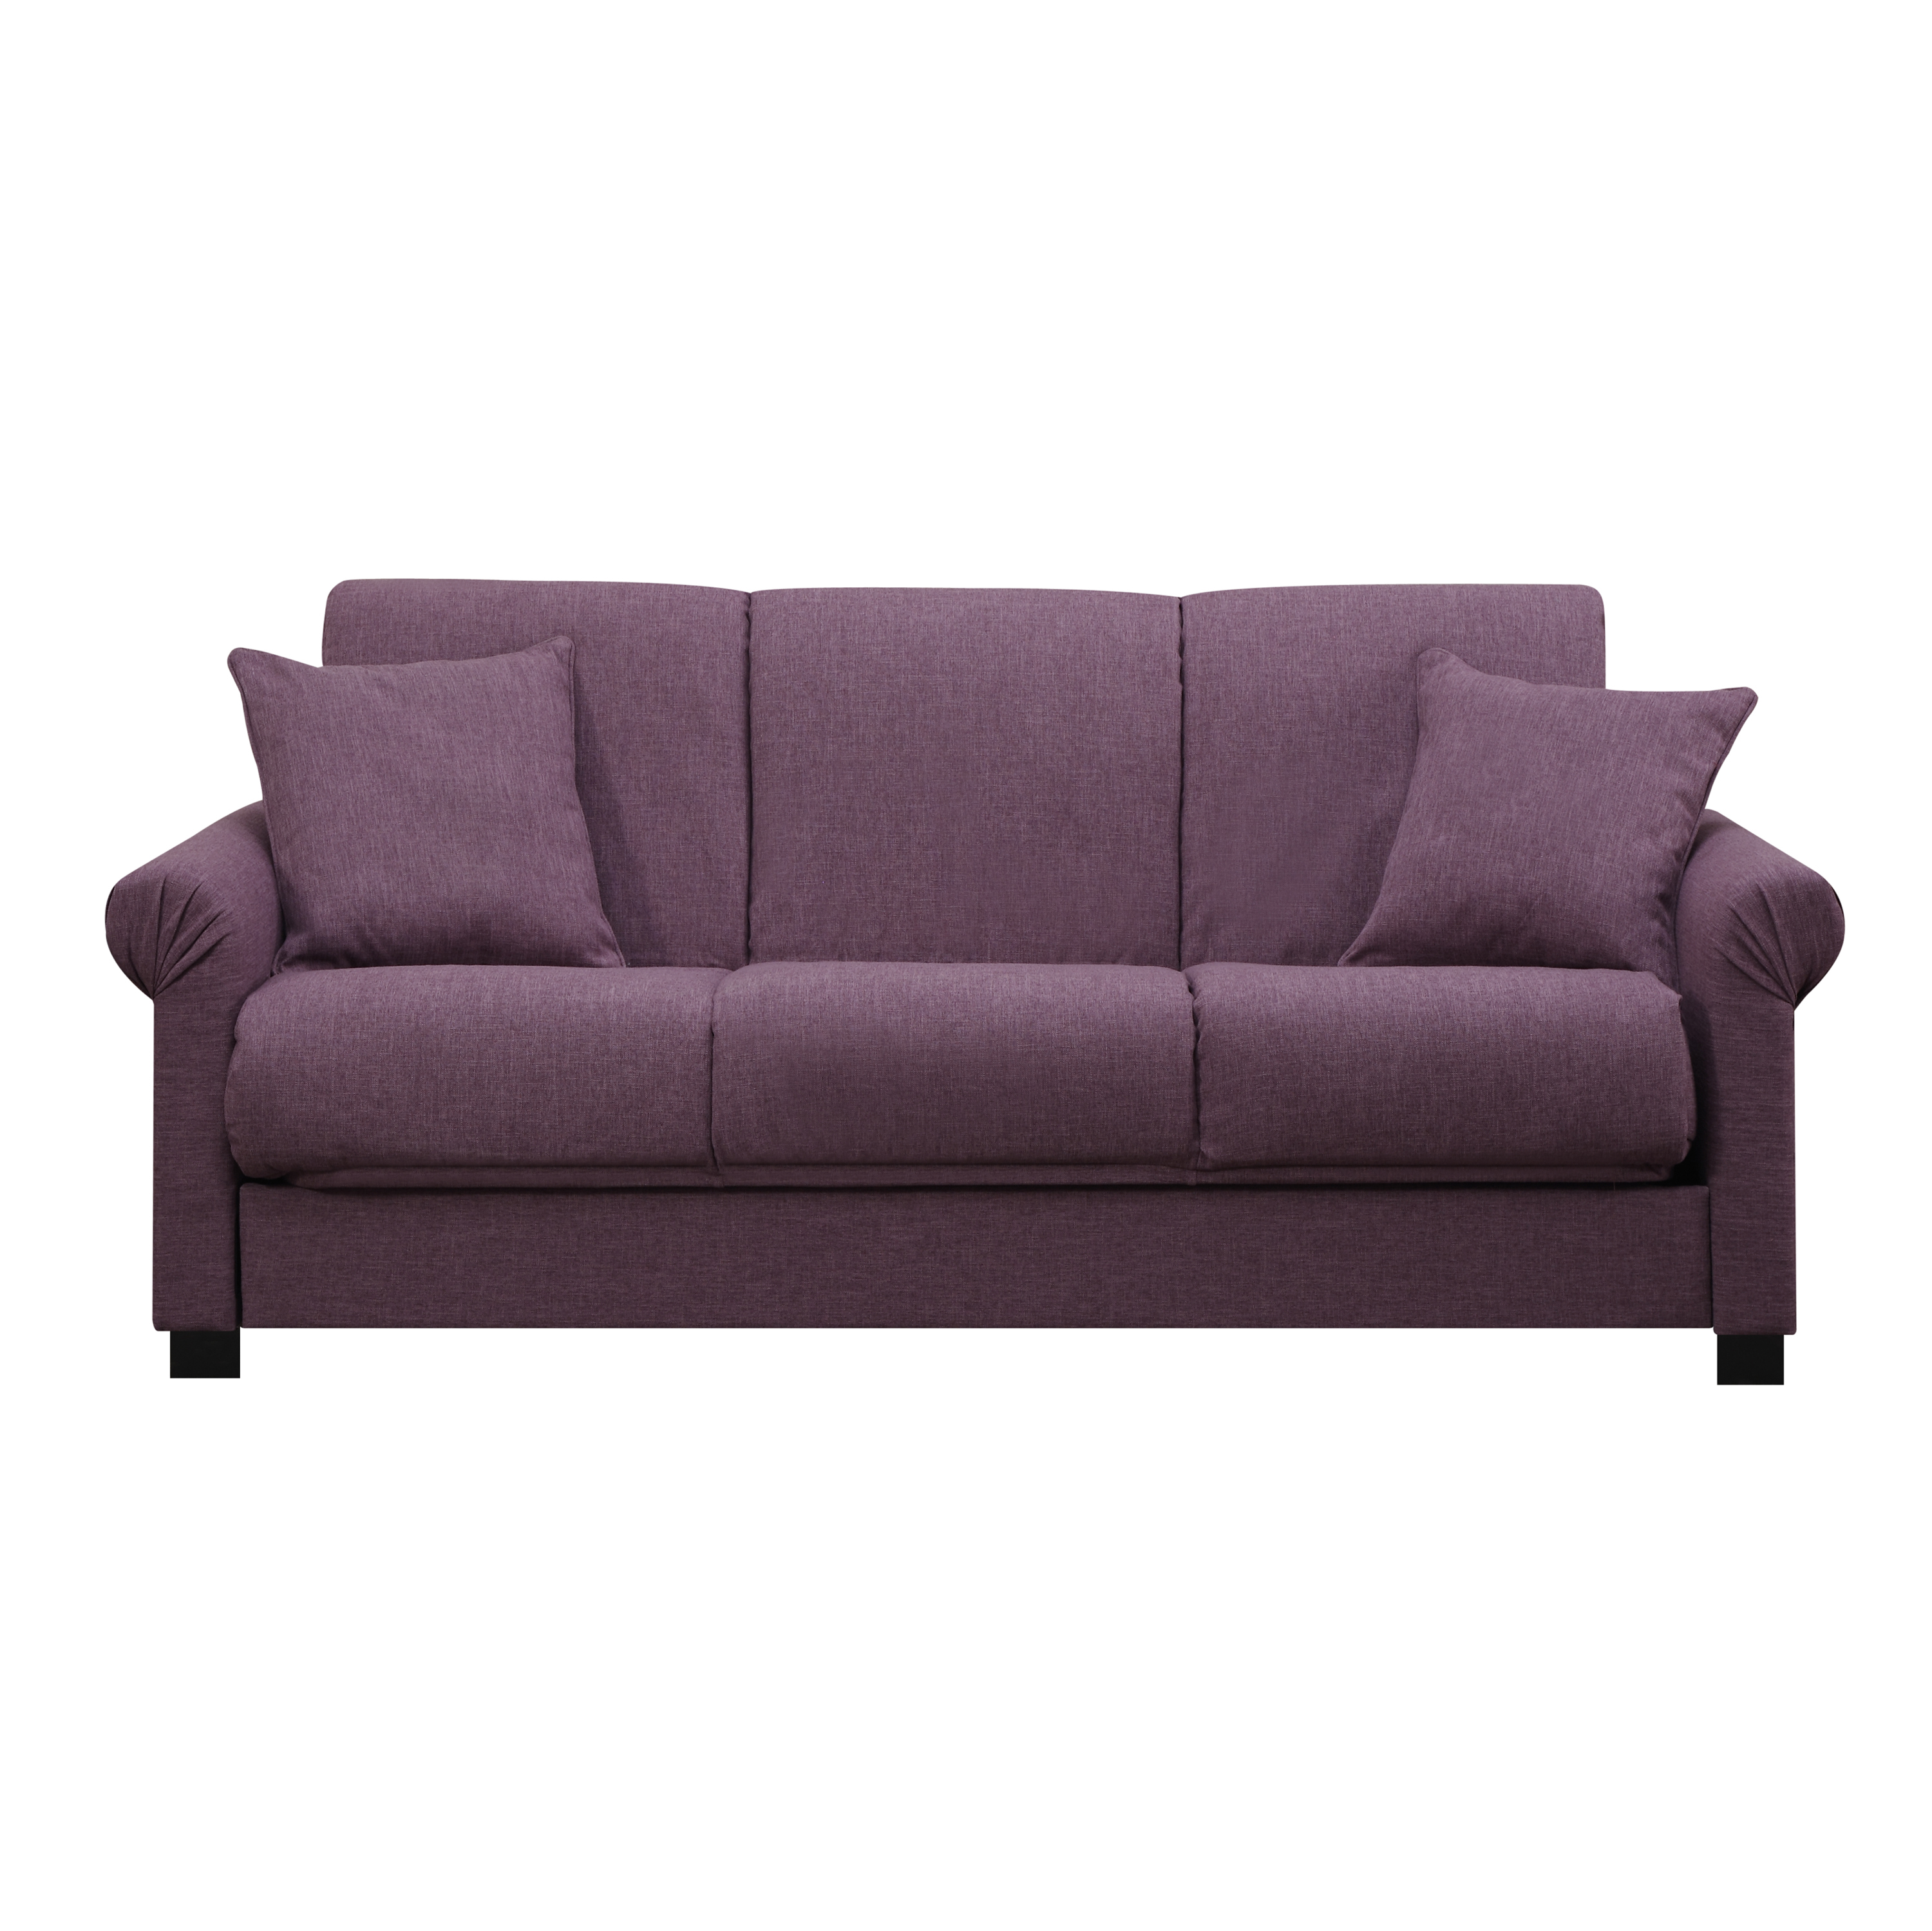 sectional sleeper sofa ikea photo - 4